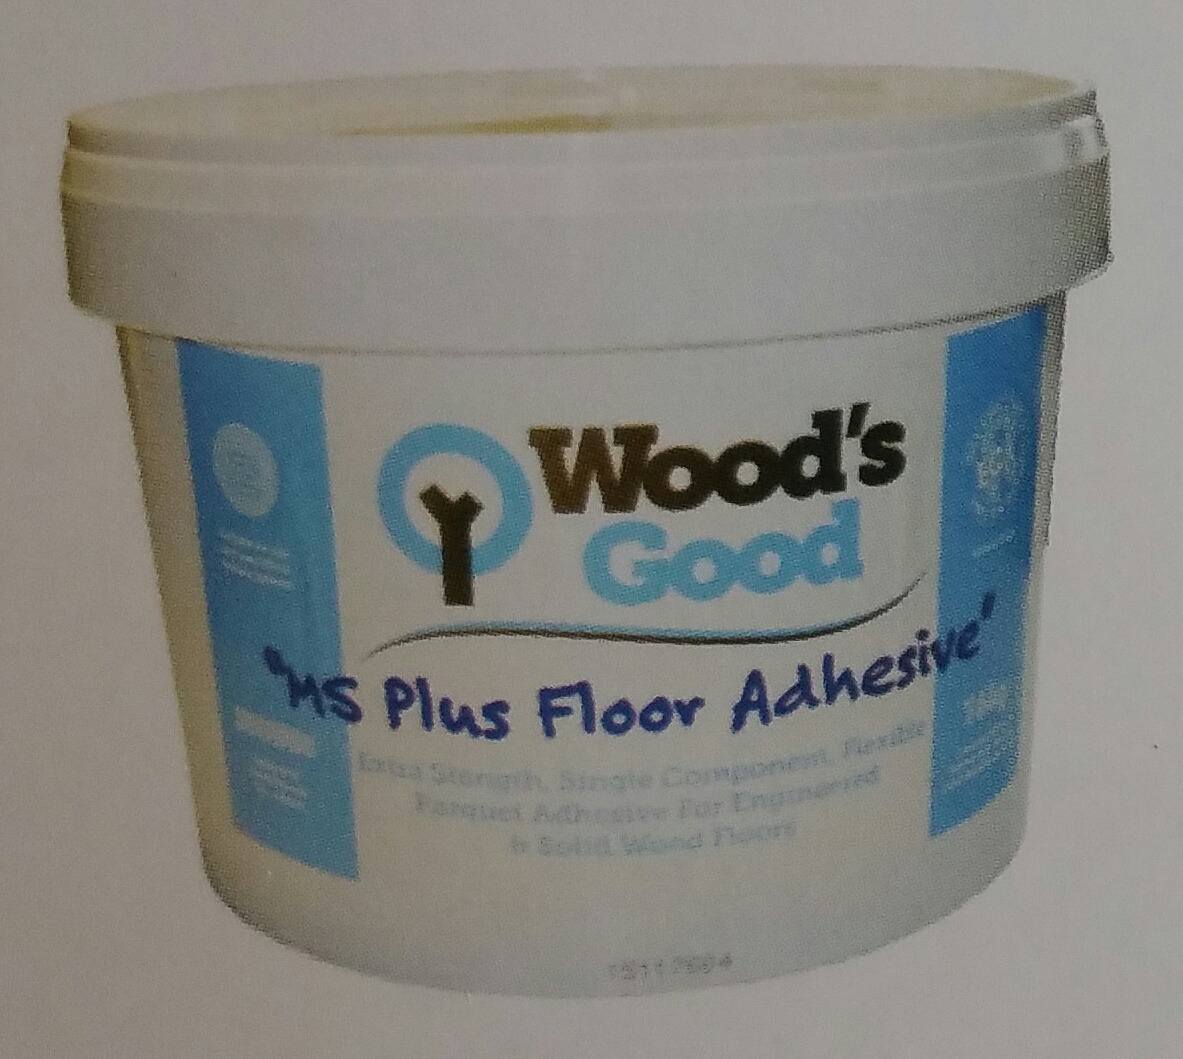 woods_good_ms_plus_concreate_and_wood_flooring_adhesive